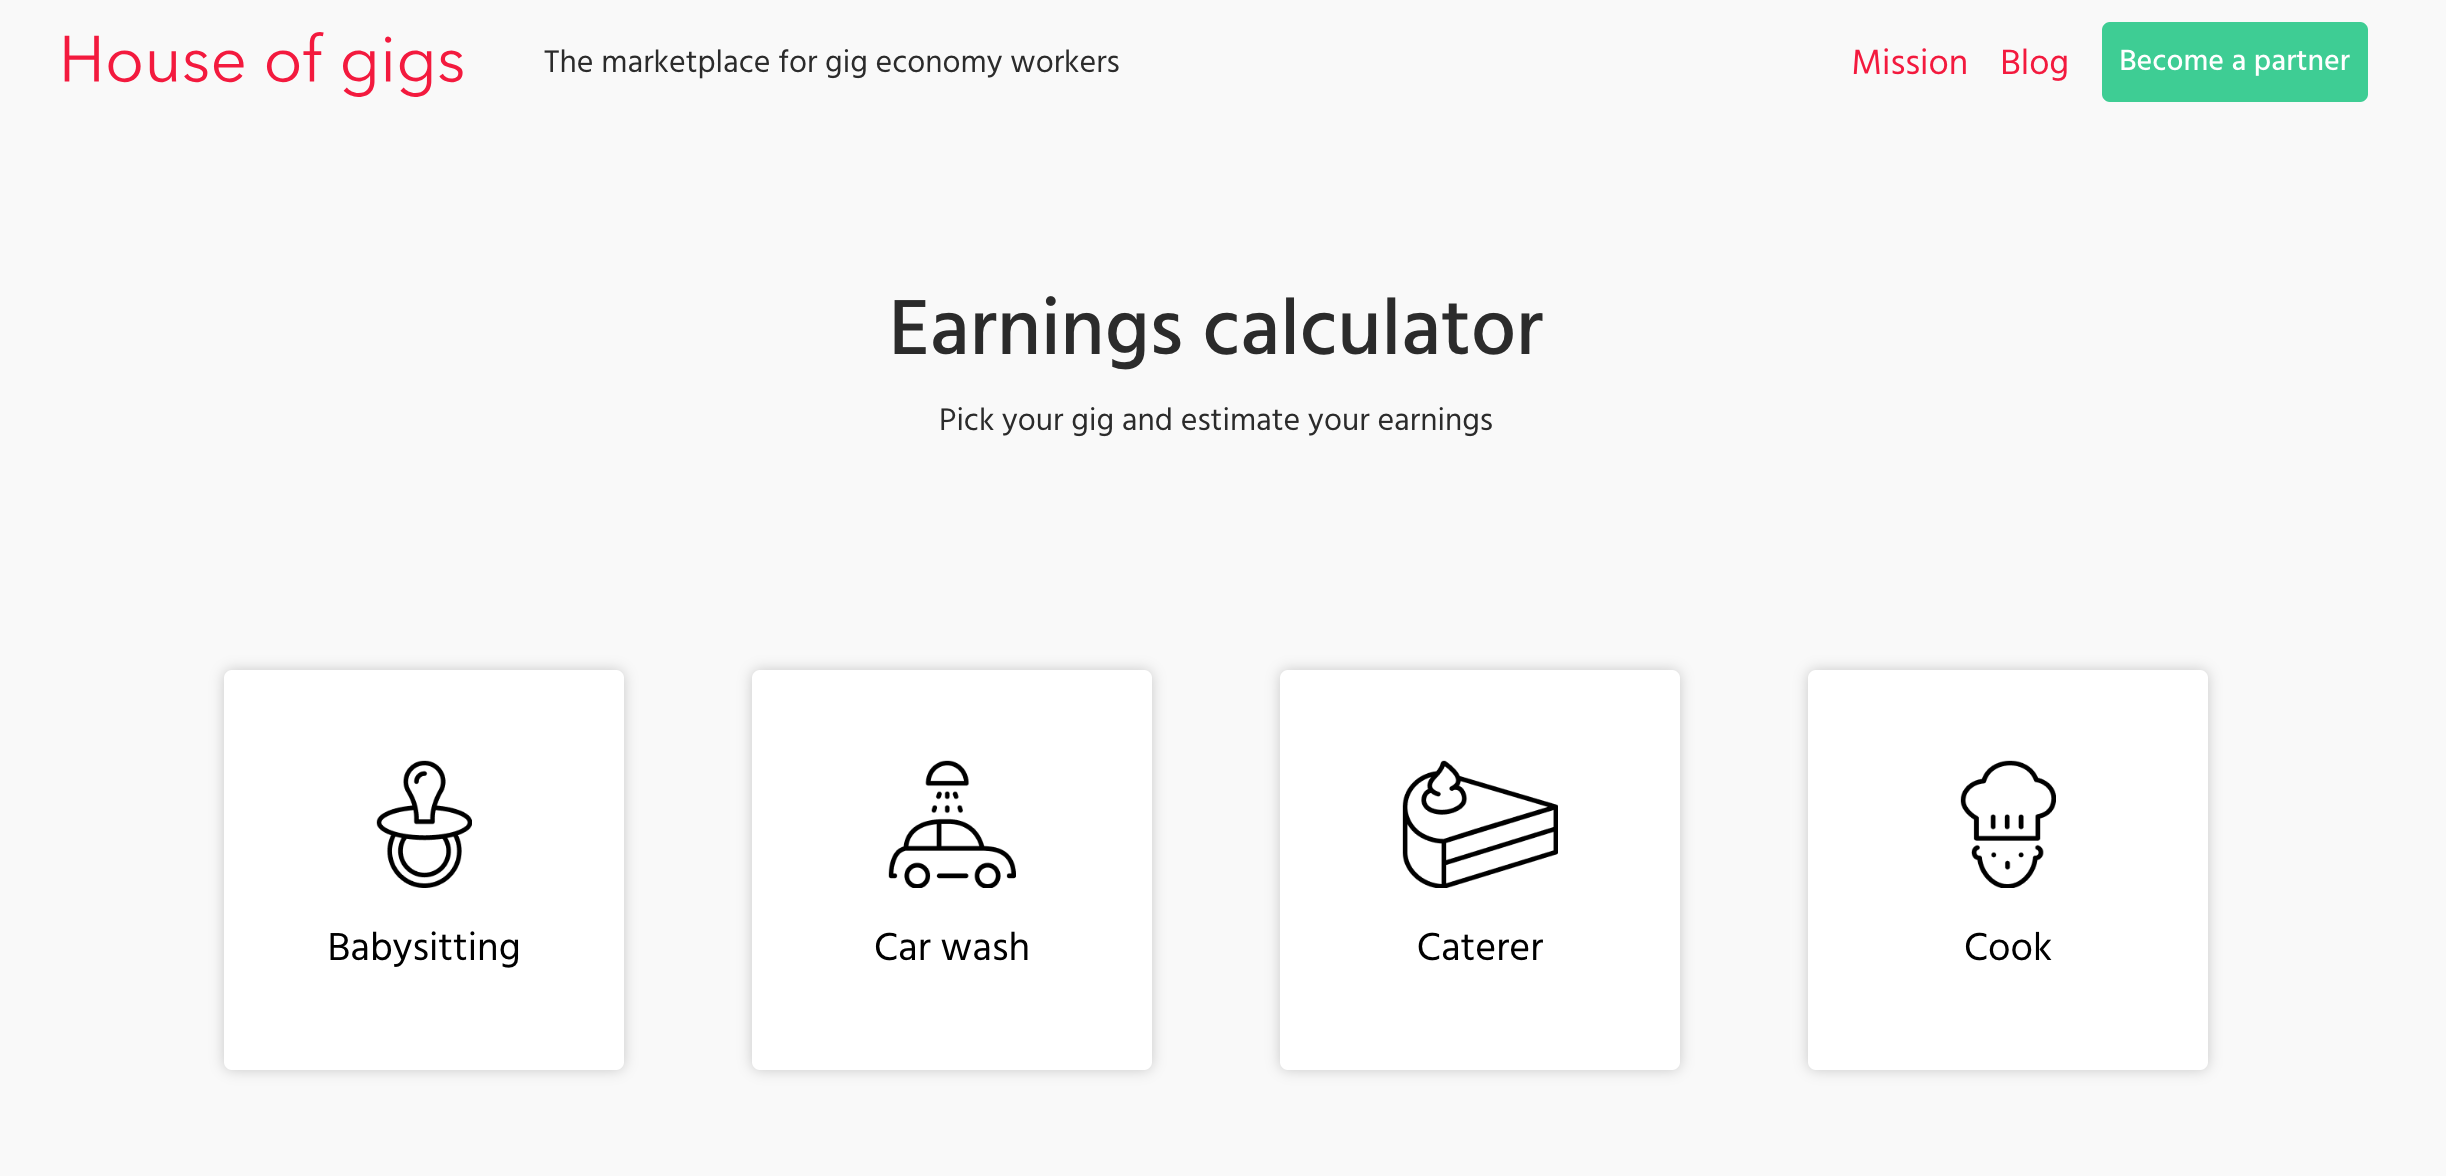 Find out how much you can earn with our new calculator!